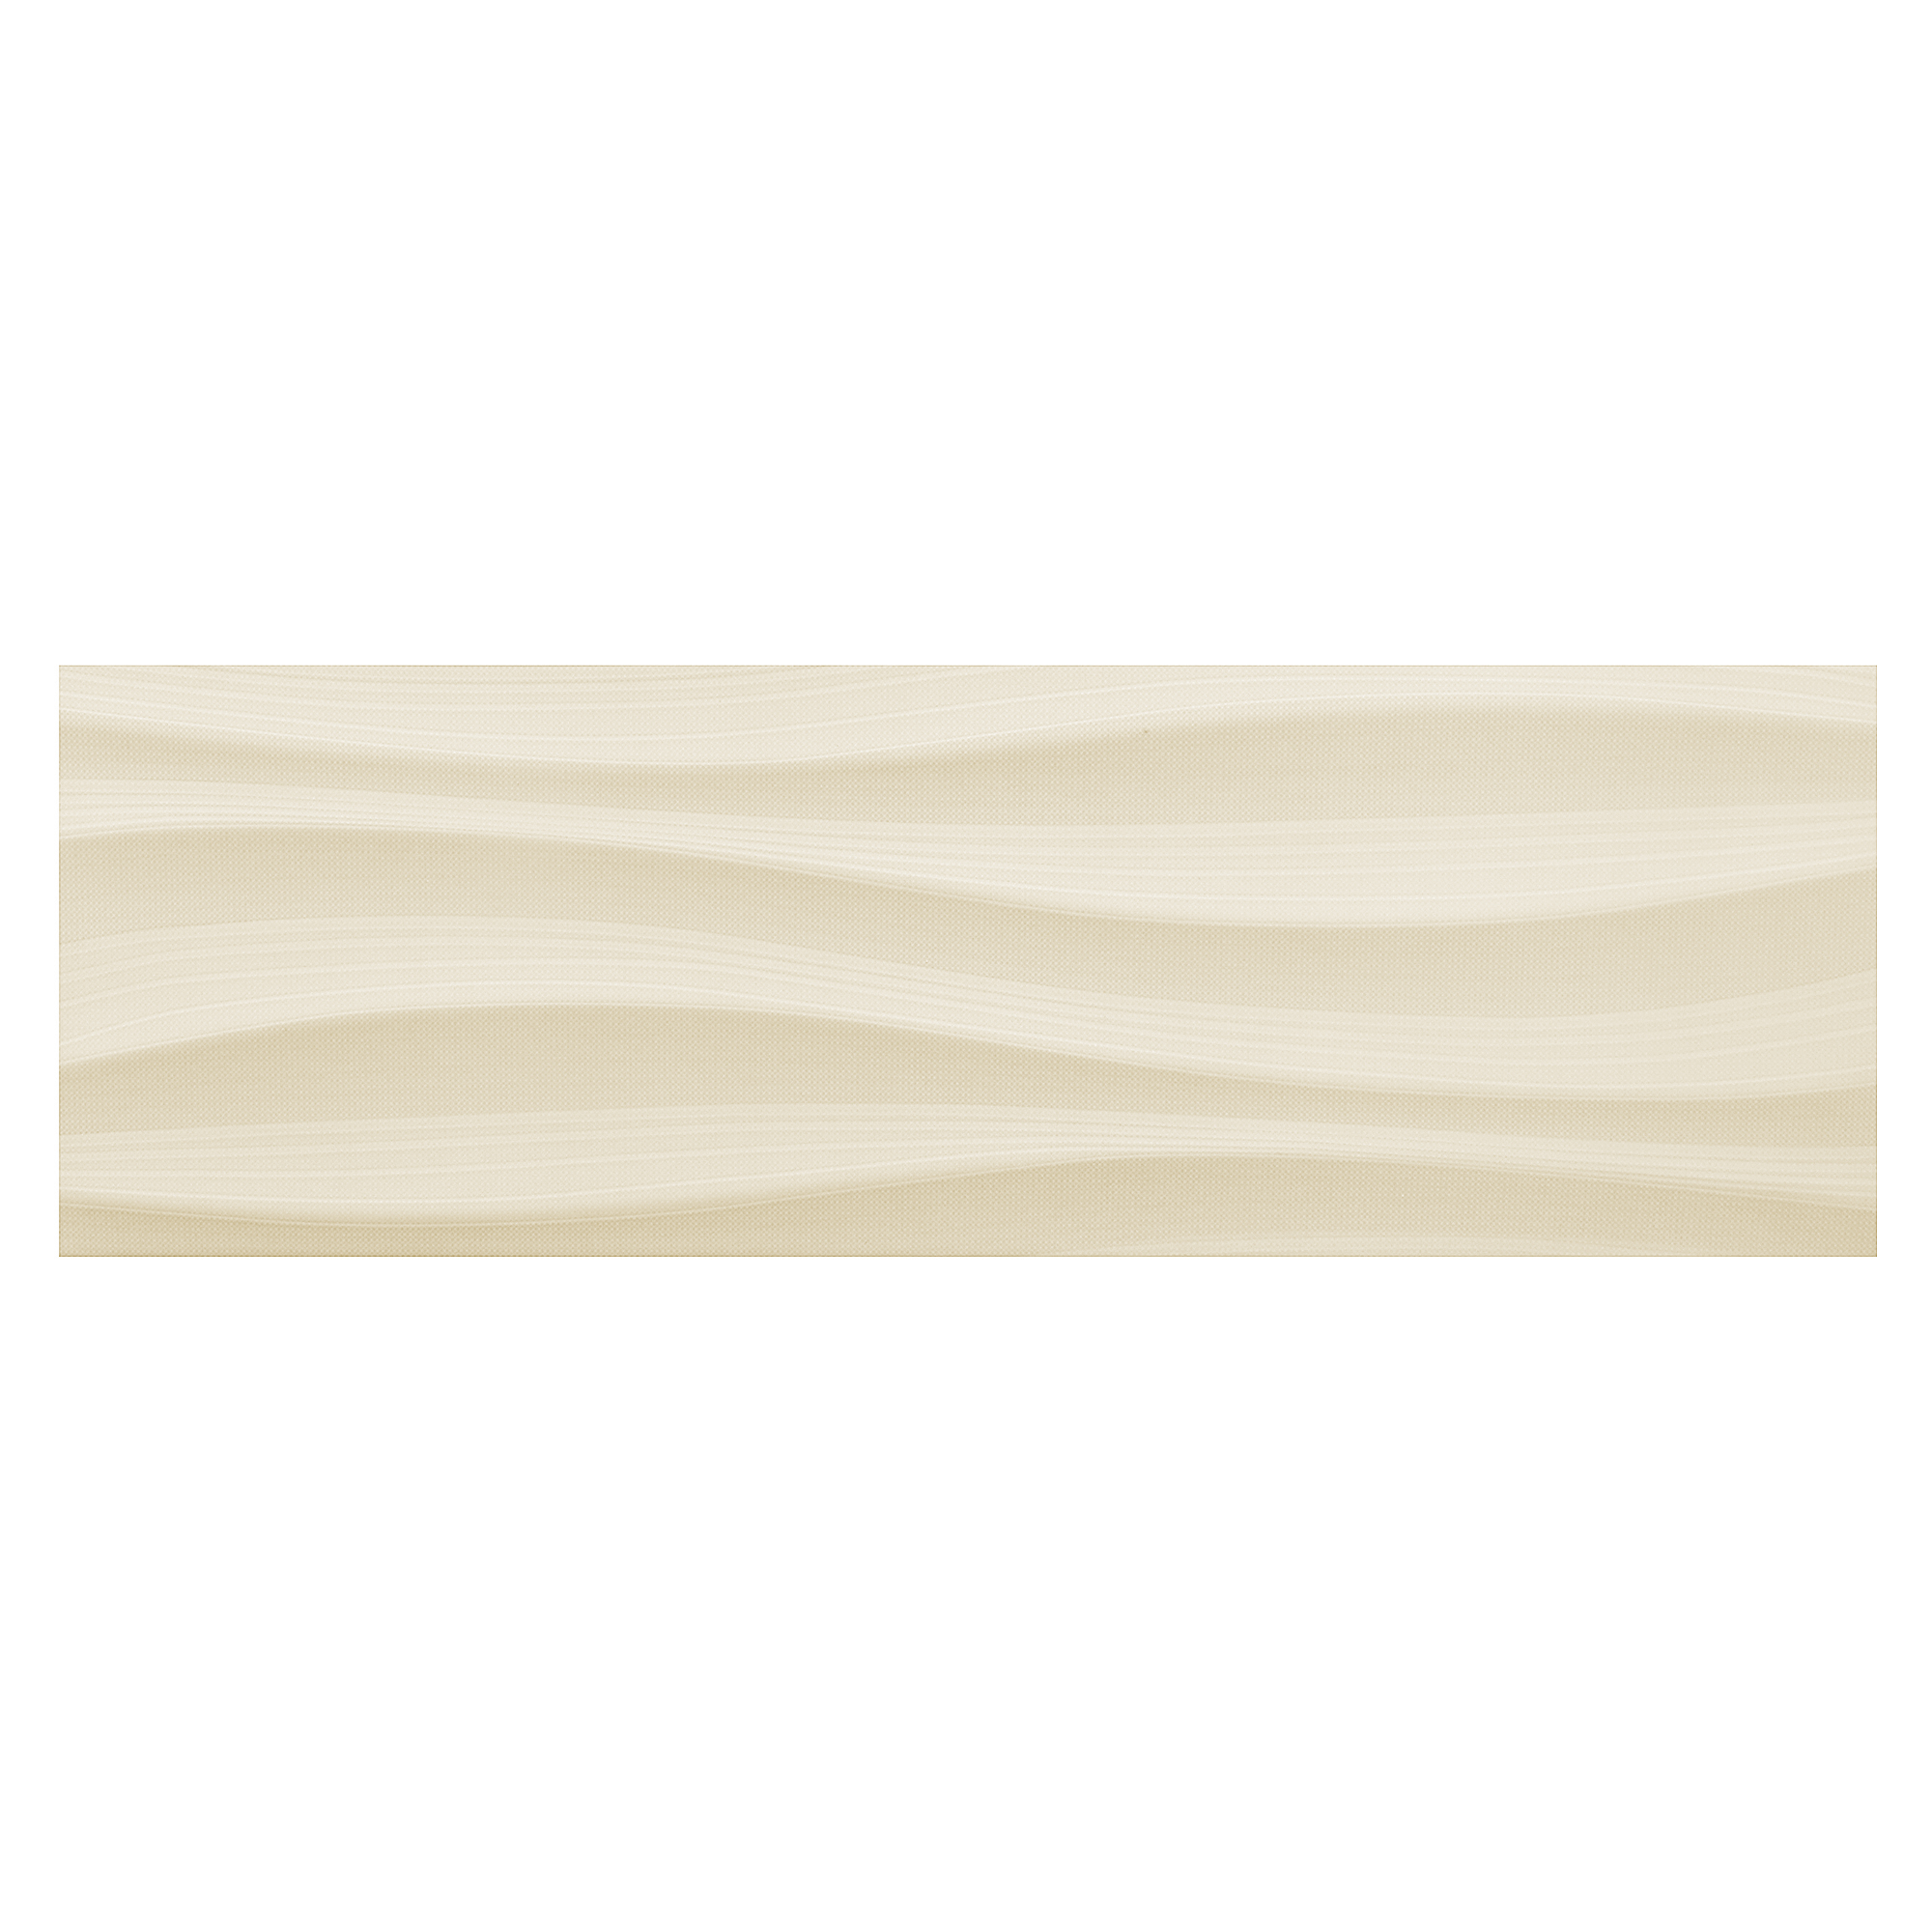 Плитка настенная Cristacer victoria gris 25x75 плитка настенная cifre relieve accord white 25x75